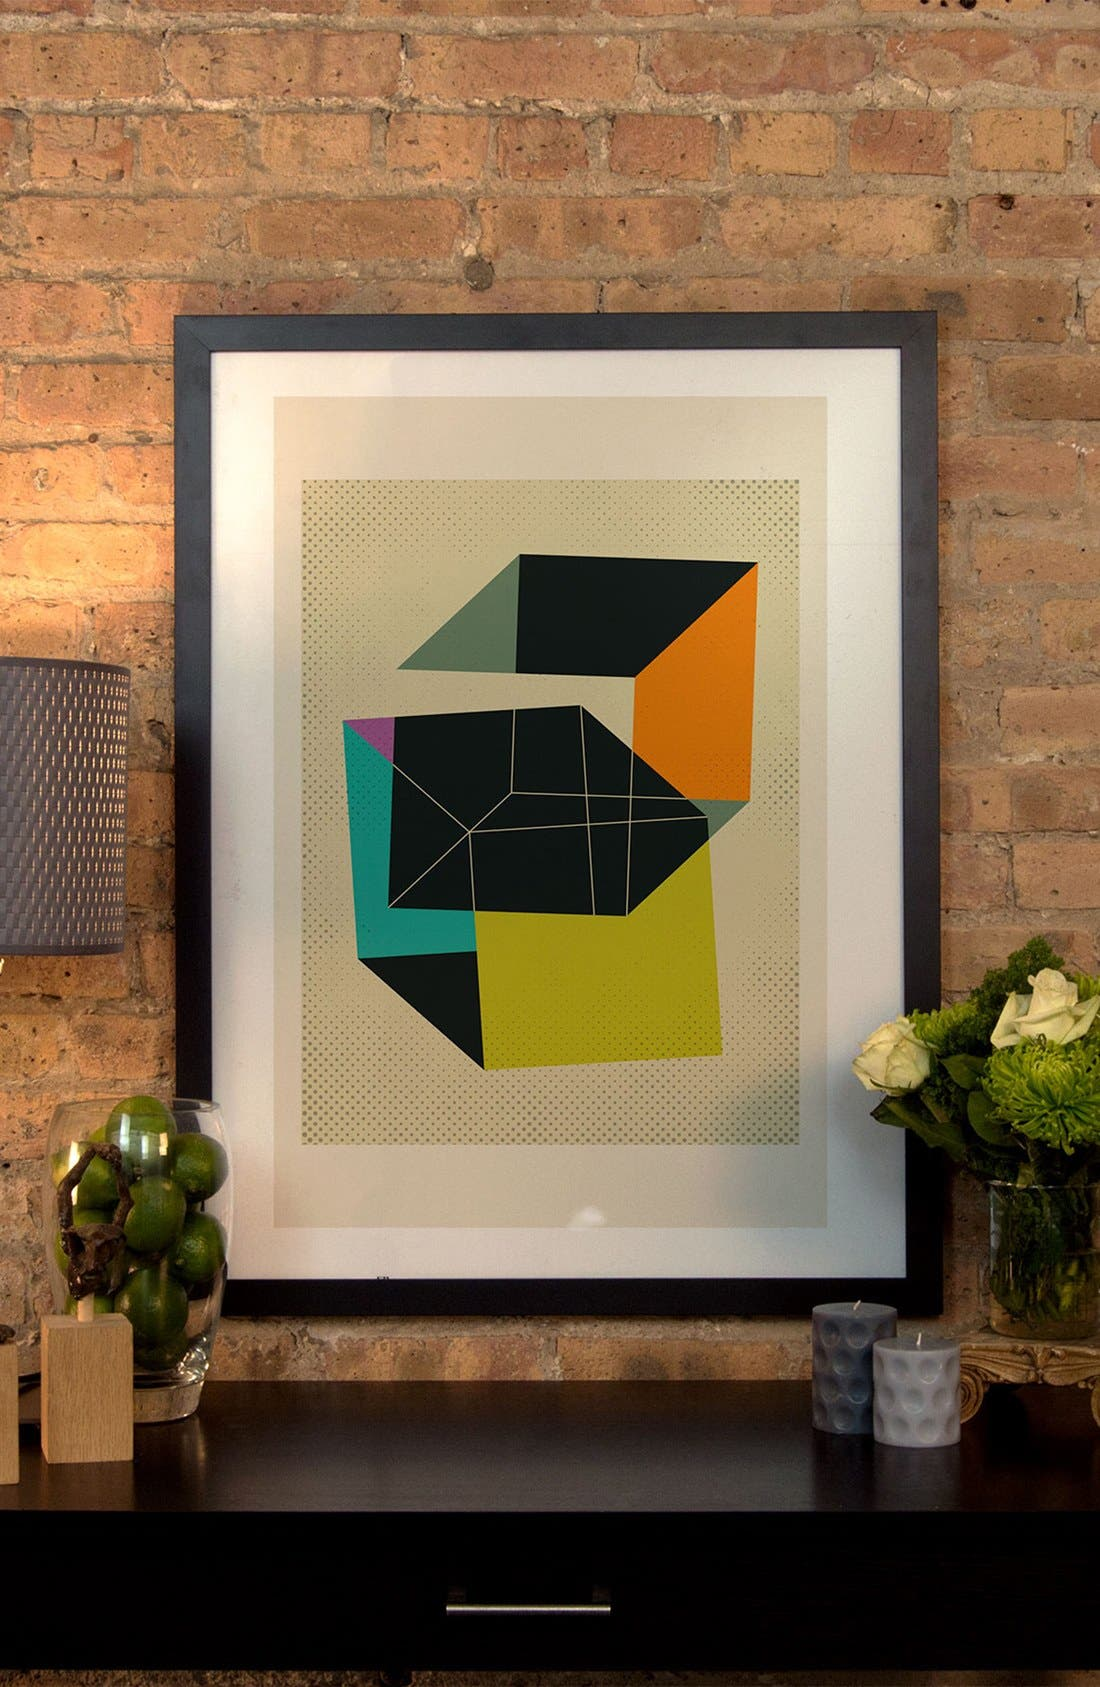 'Cubes V' Framed Fine Art Print,                             Alternate thumbnail 2, color,                             001